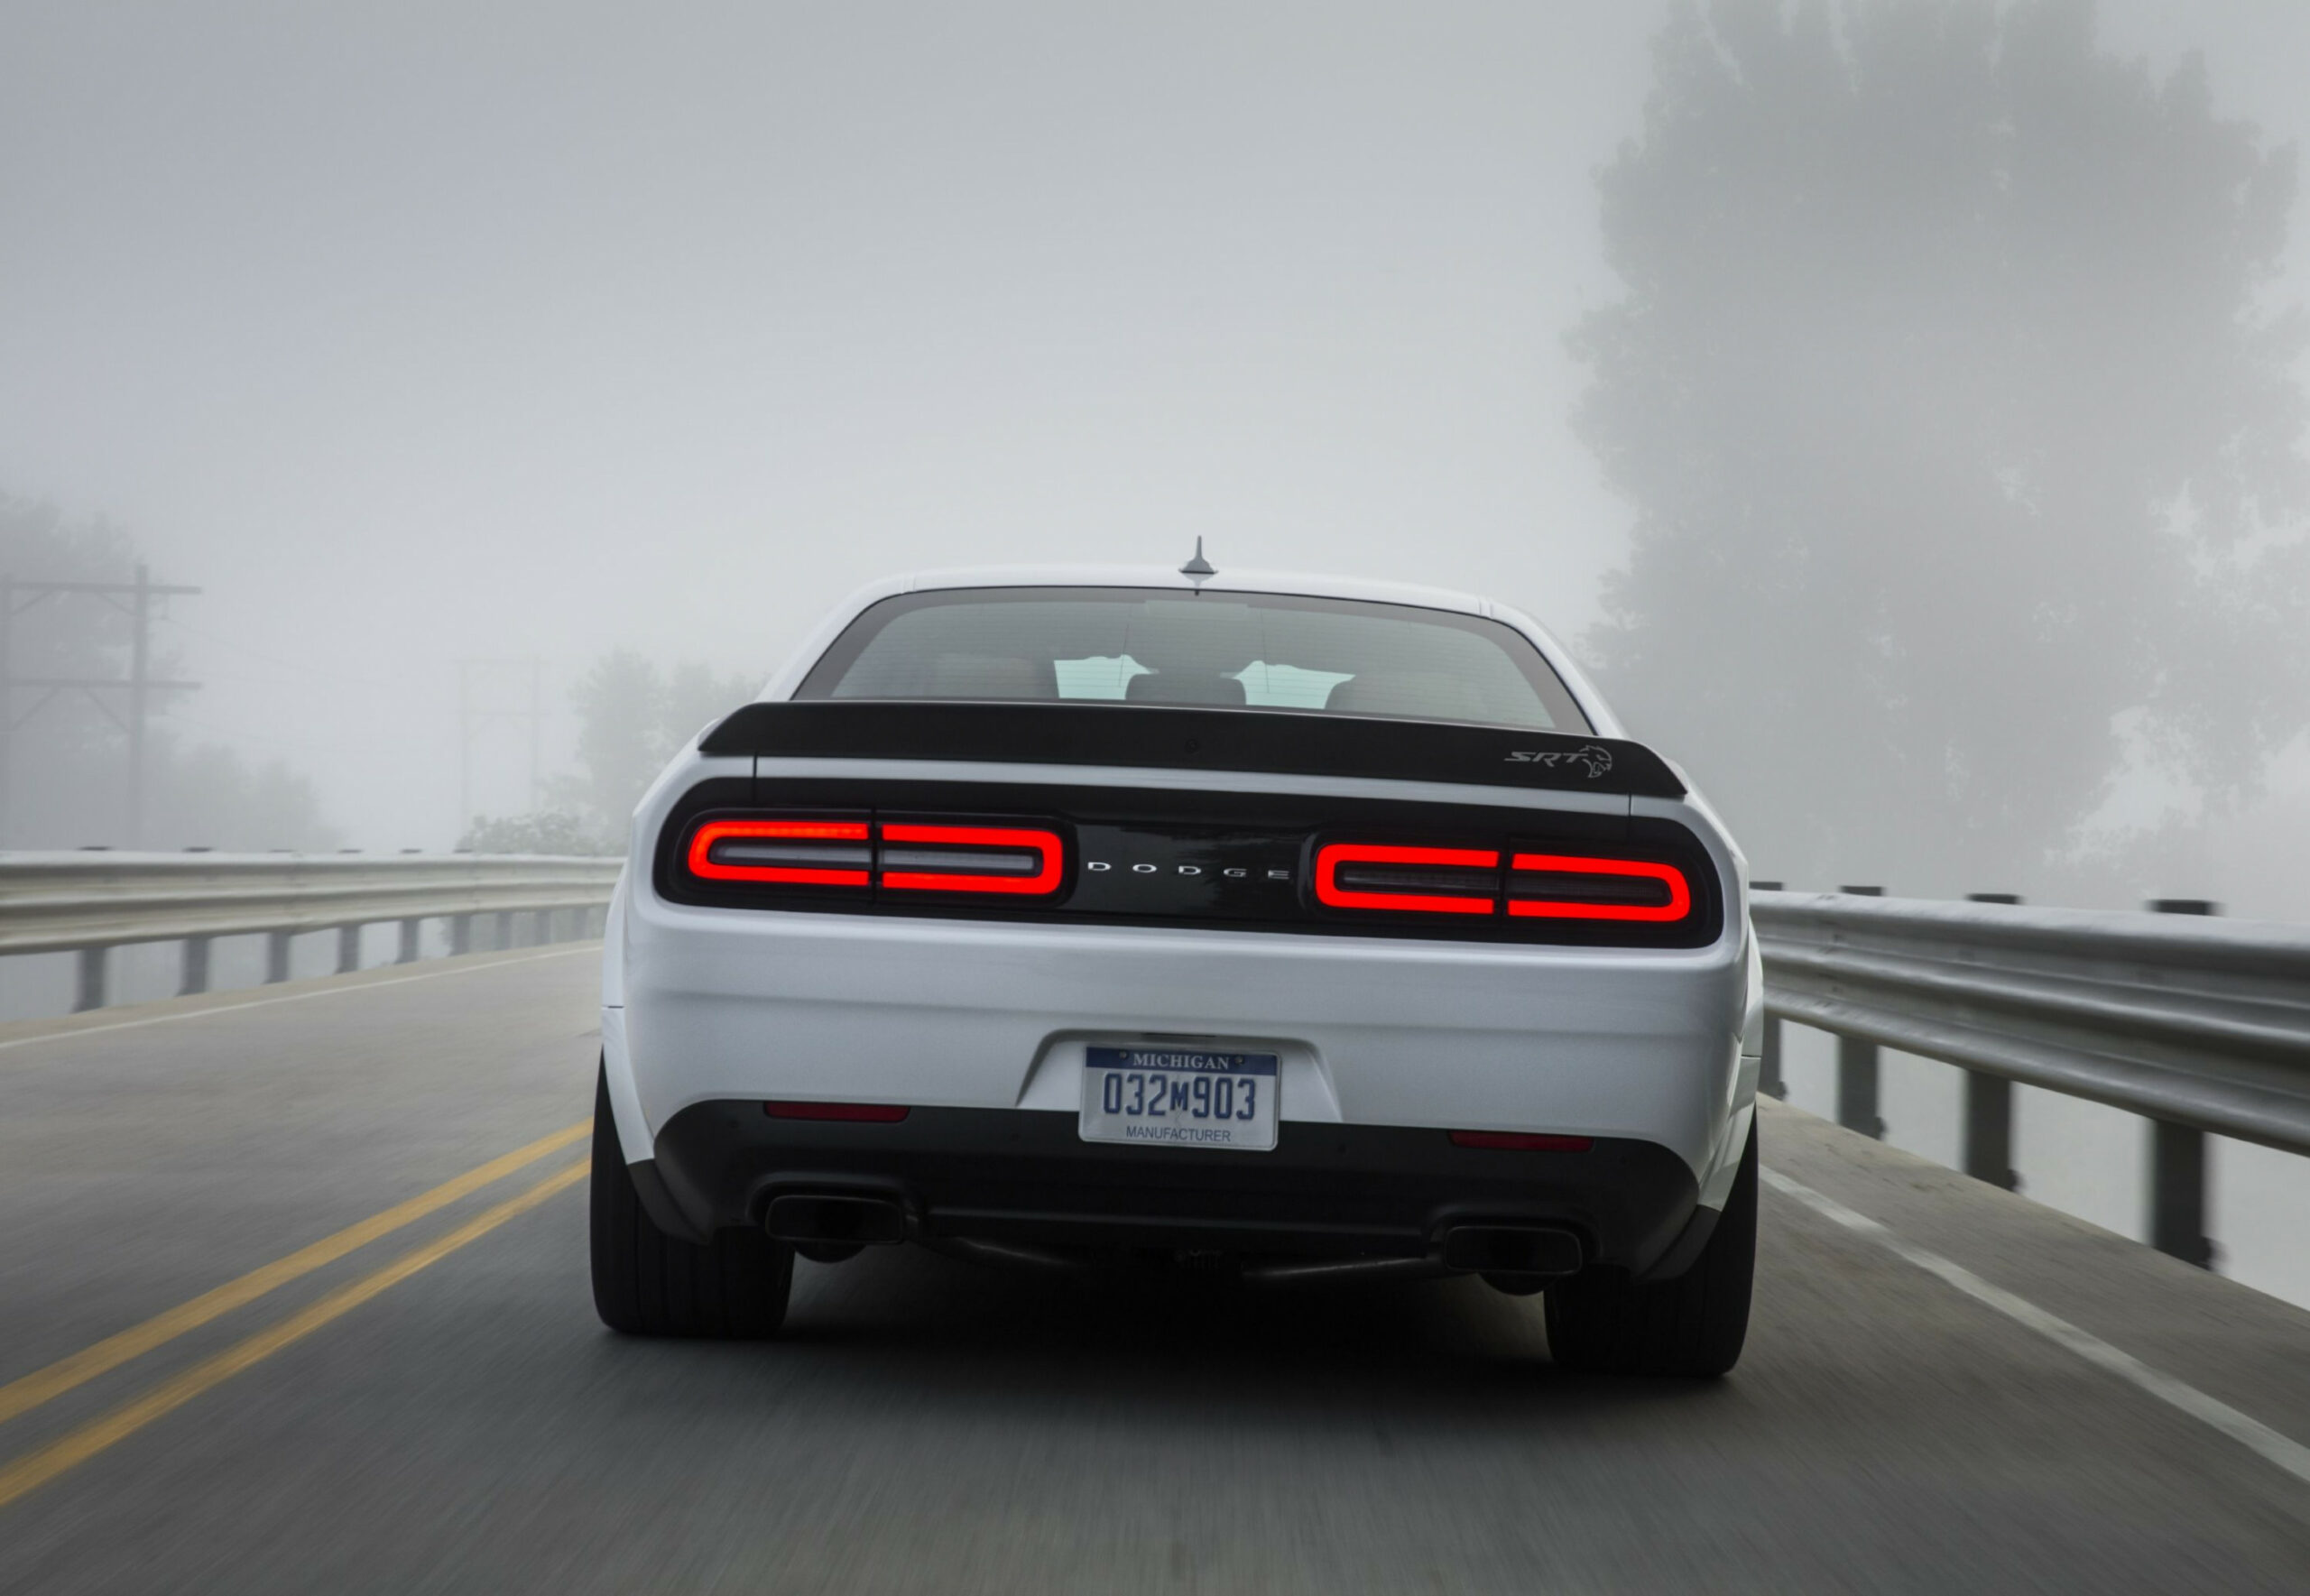 Concept and Review Dodge Challenger Concept 2022